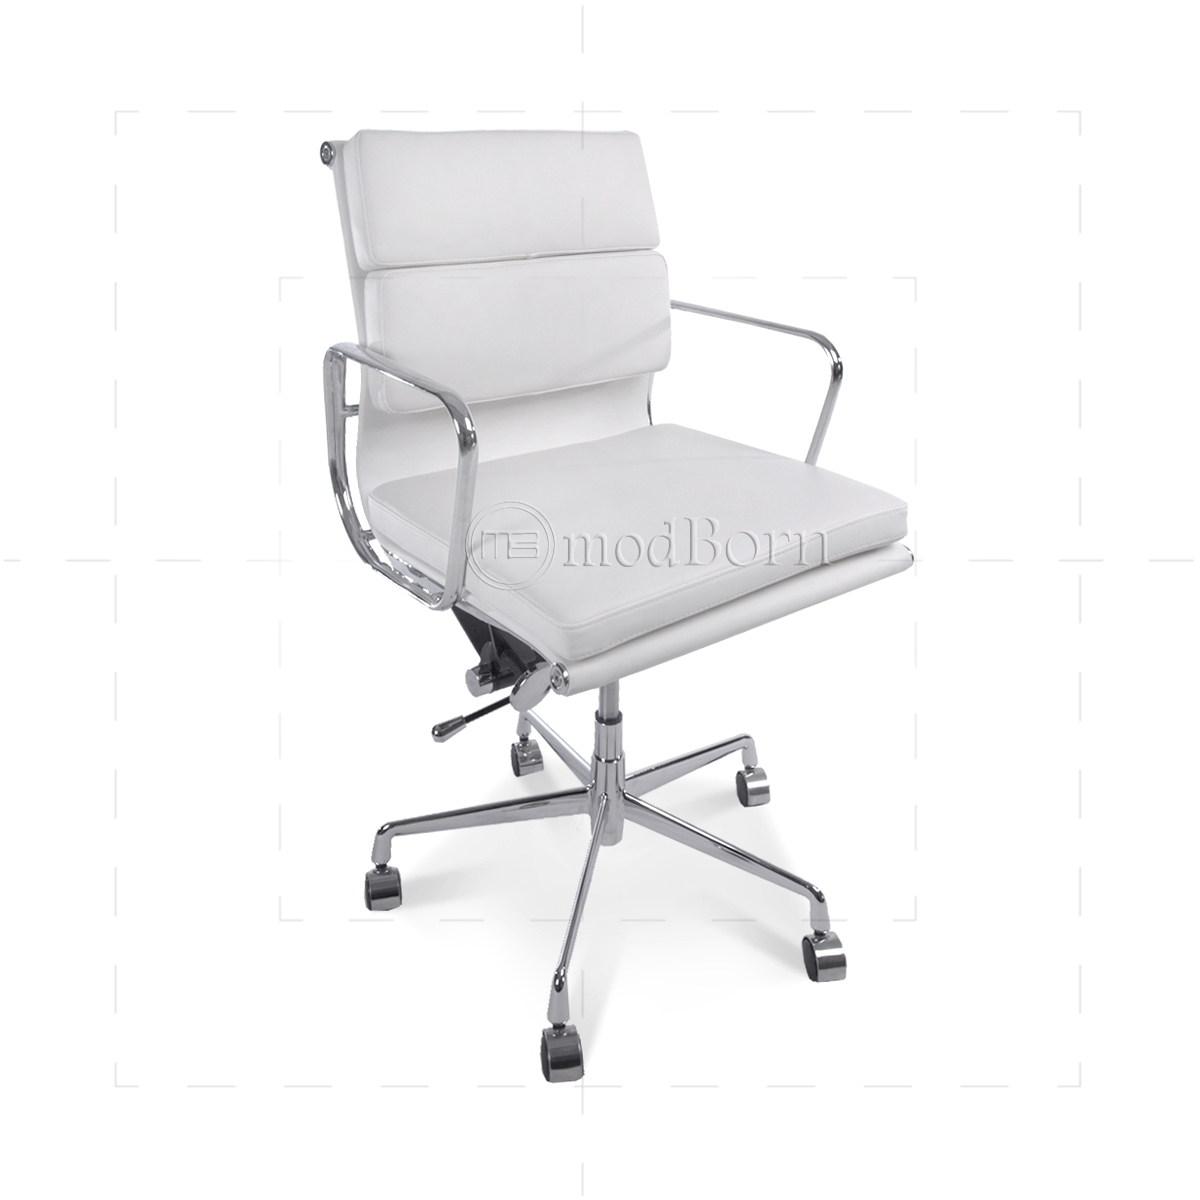 EA217 Eames Style fice Chair Low Back Soft Pad White Leather Replica